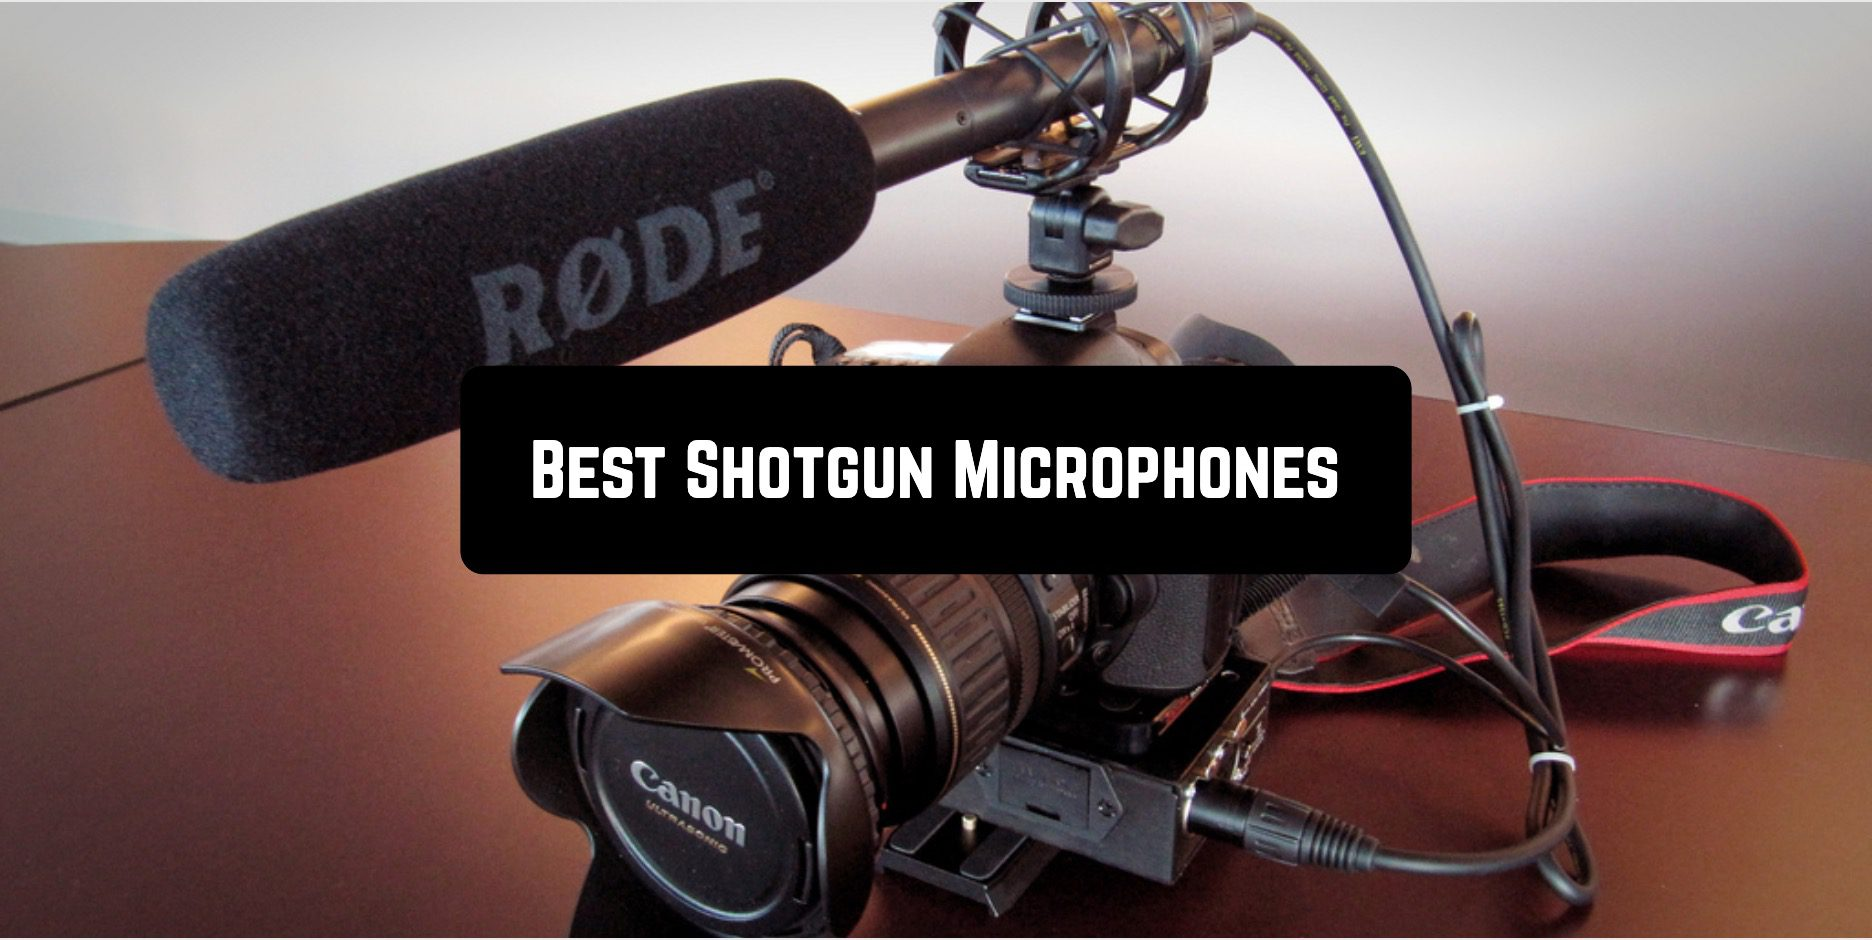 Best Shotgun Microphones